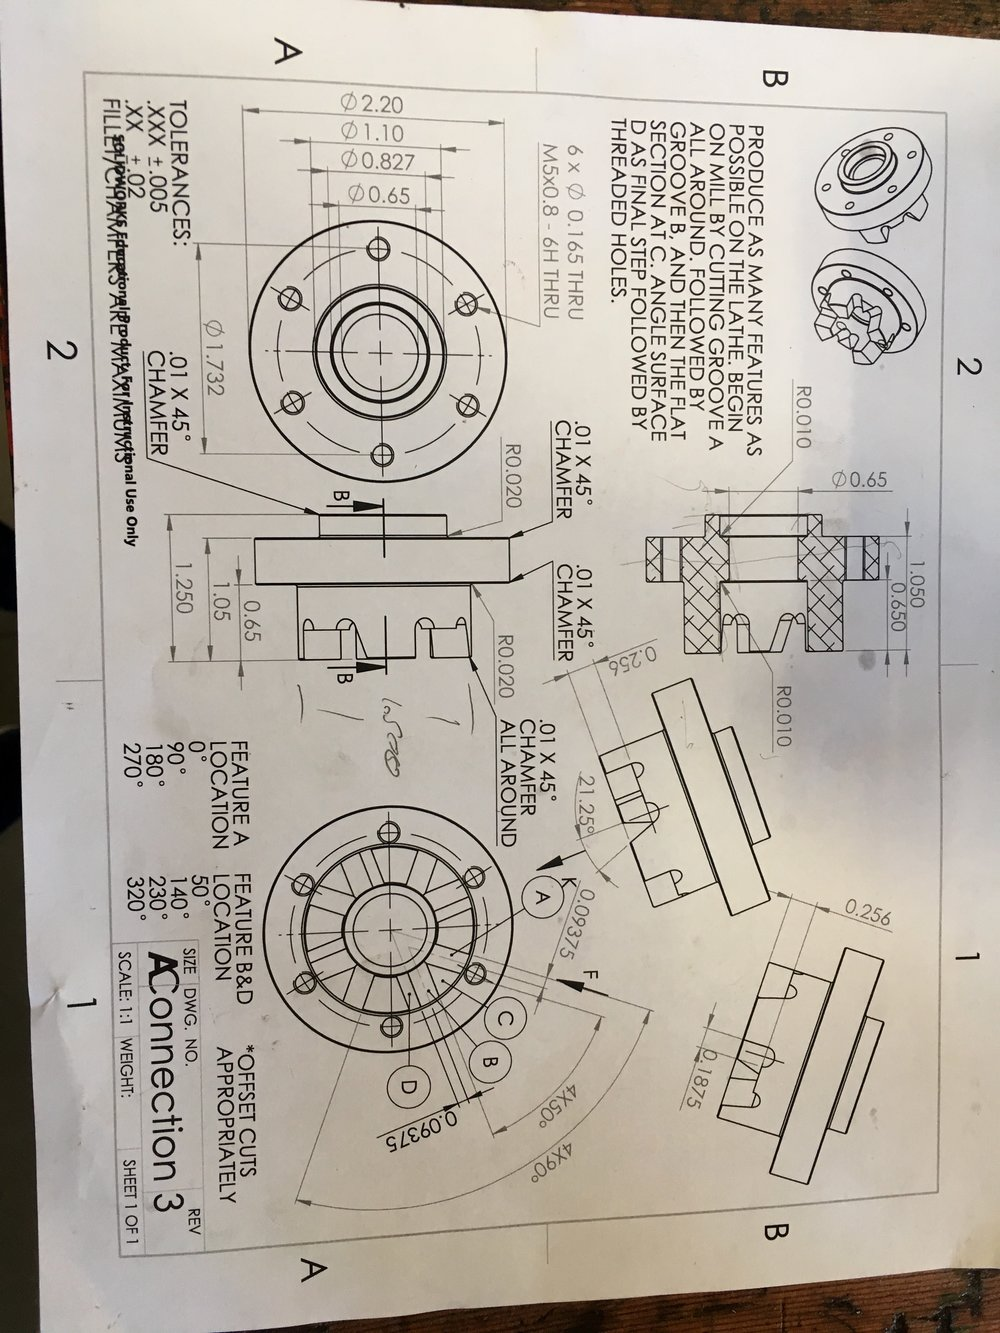 Engineering drawings for our reverse-gearing mechanism